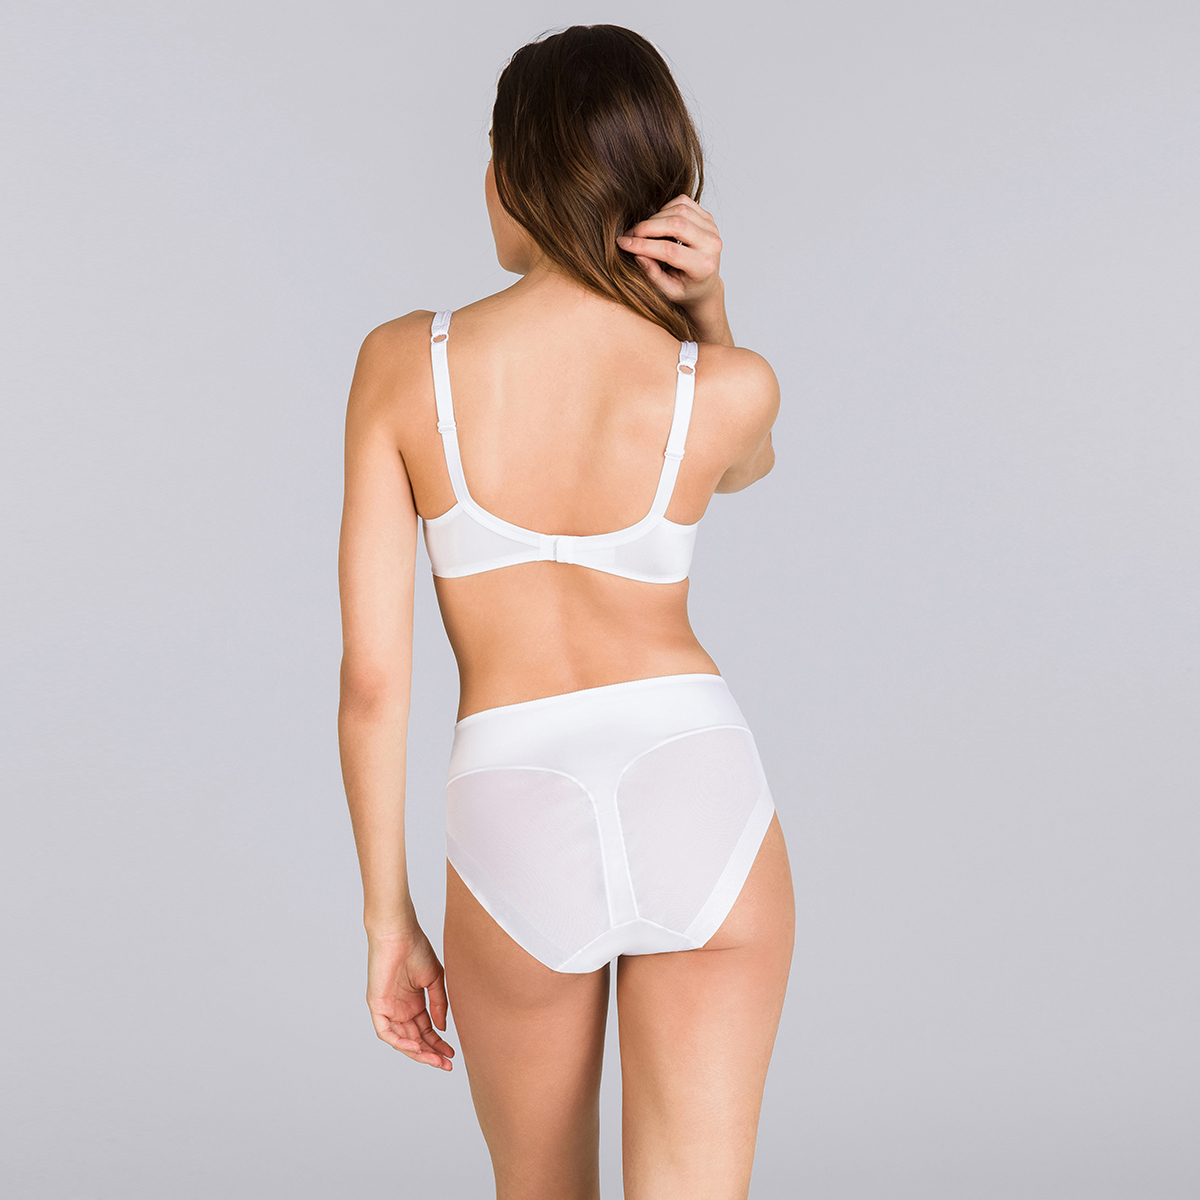 Soutien-gorge emboîtant blanc - Perfect Silhouette-PLAYTEX